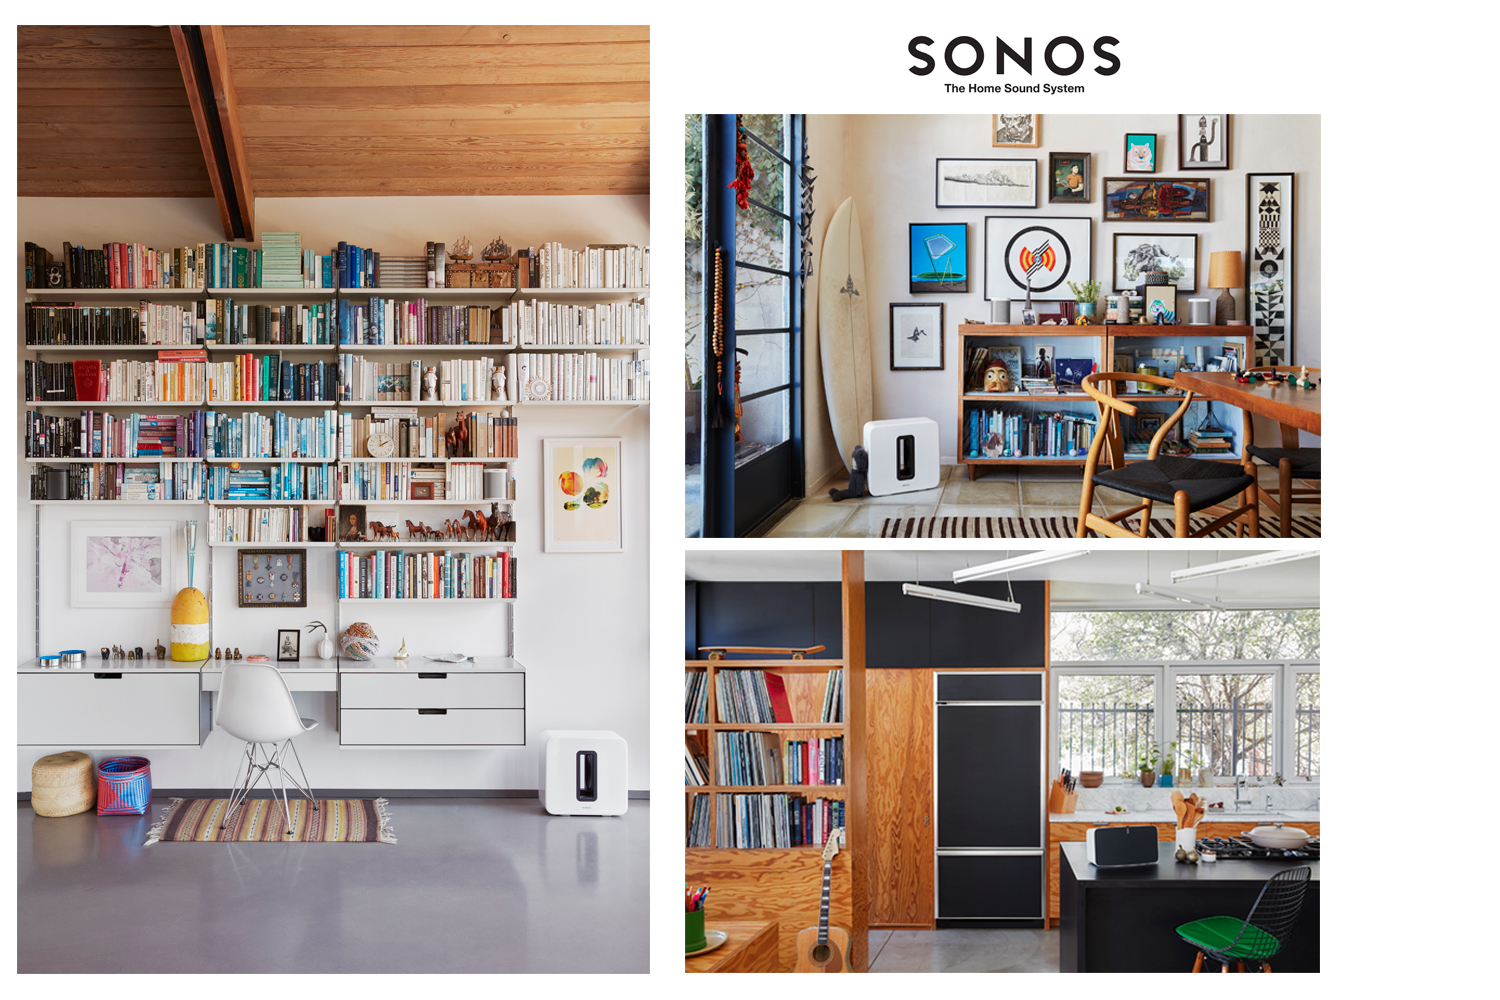 Christopher Sturman + Sonos